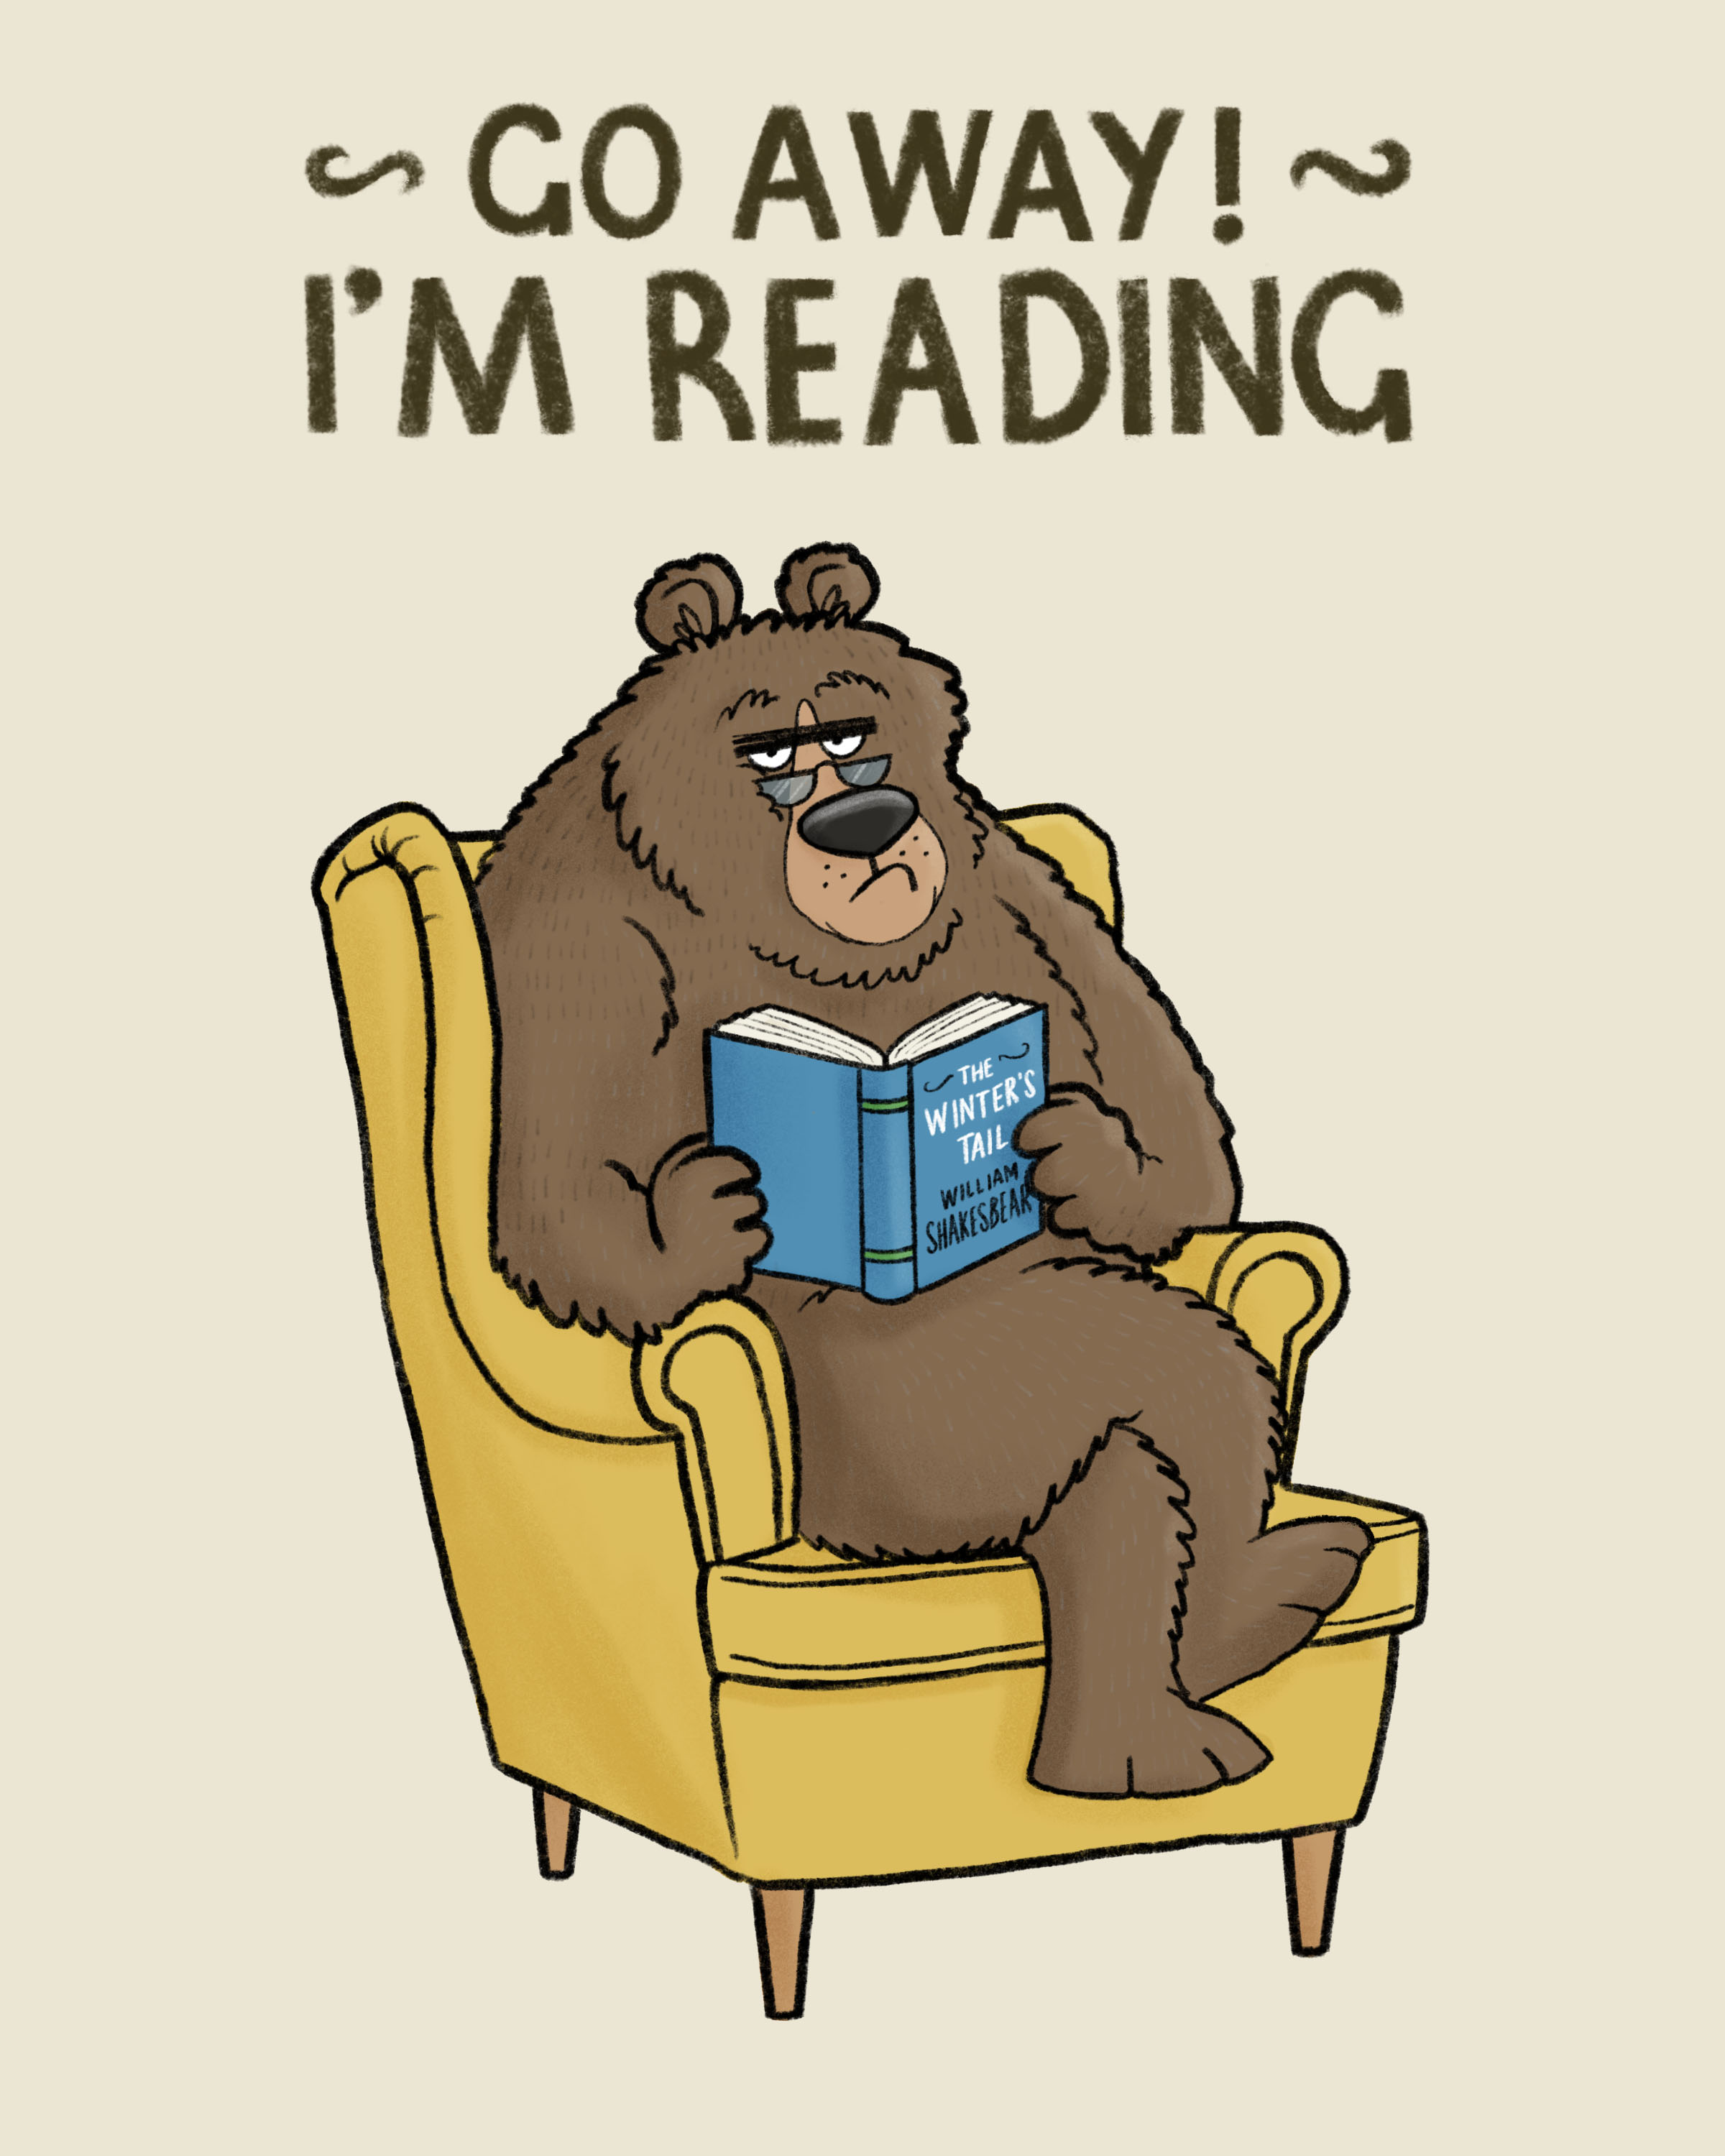 Go Away! I'm Reading